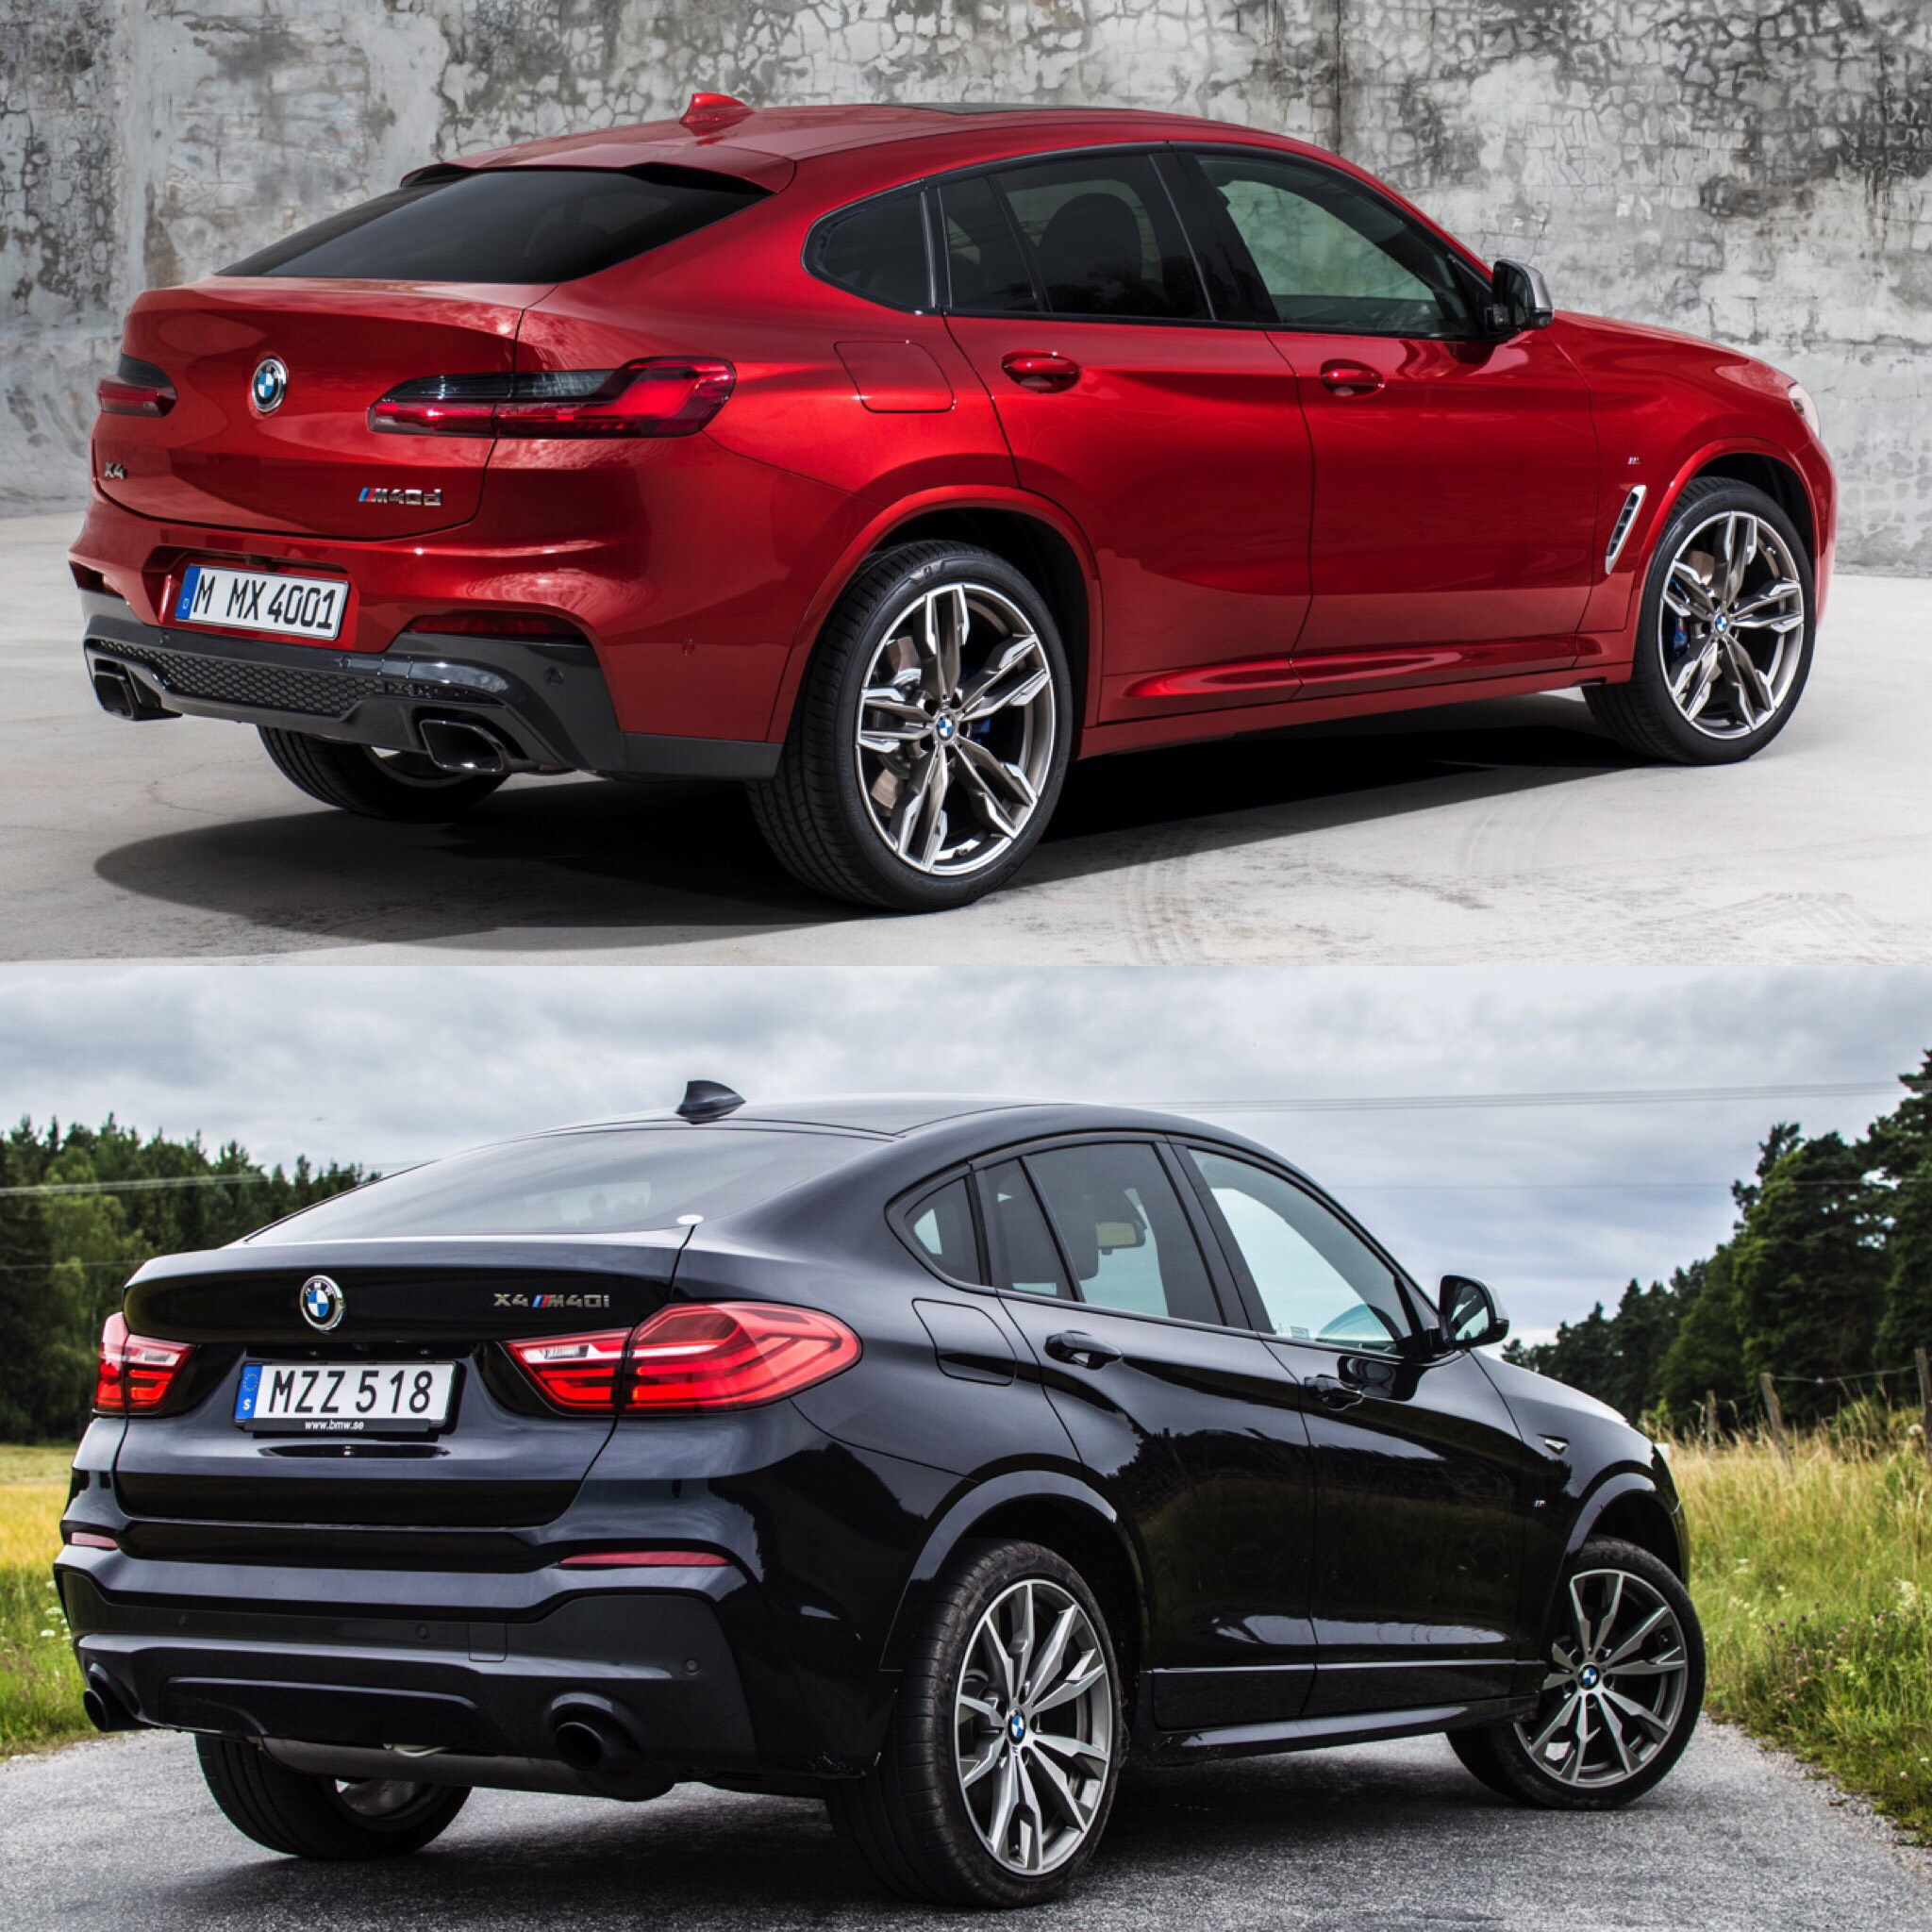 photo comparison f26 bmw x4 vs g02 bmw x4 old vs new. Black Bedroom Furniture Sets. Home Design Ideas